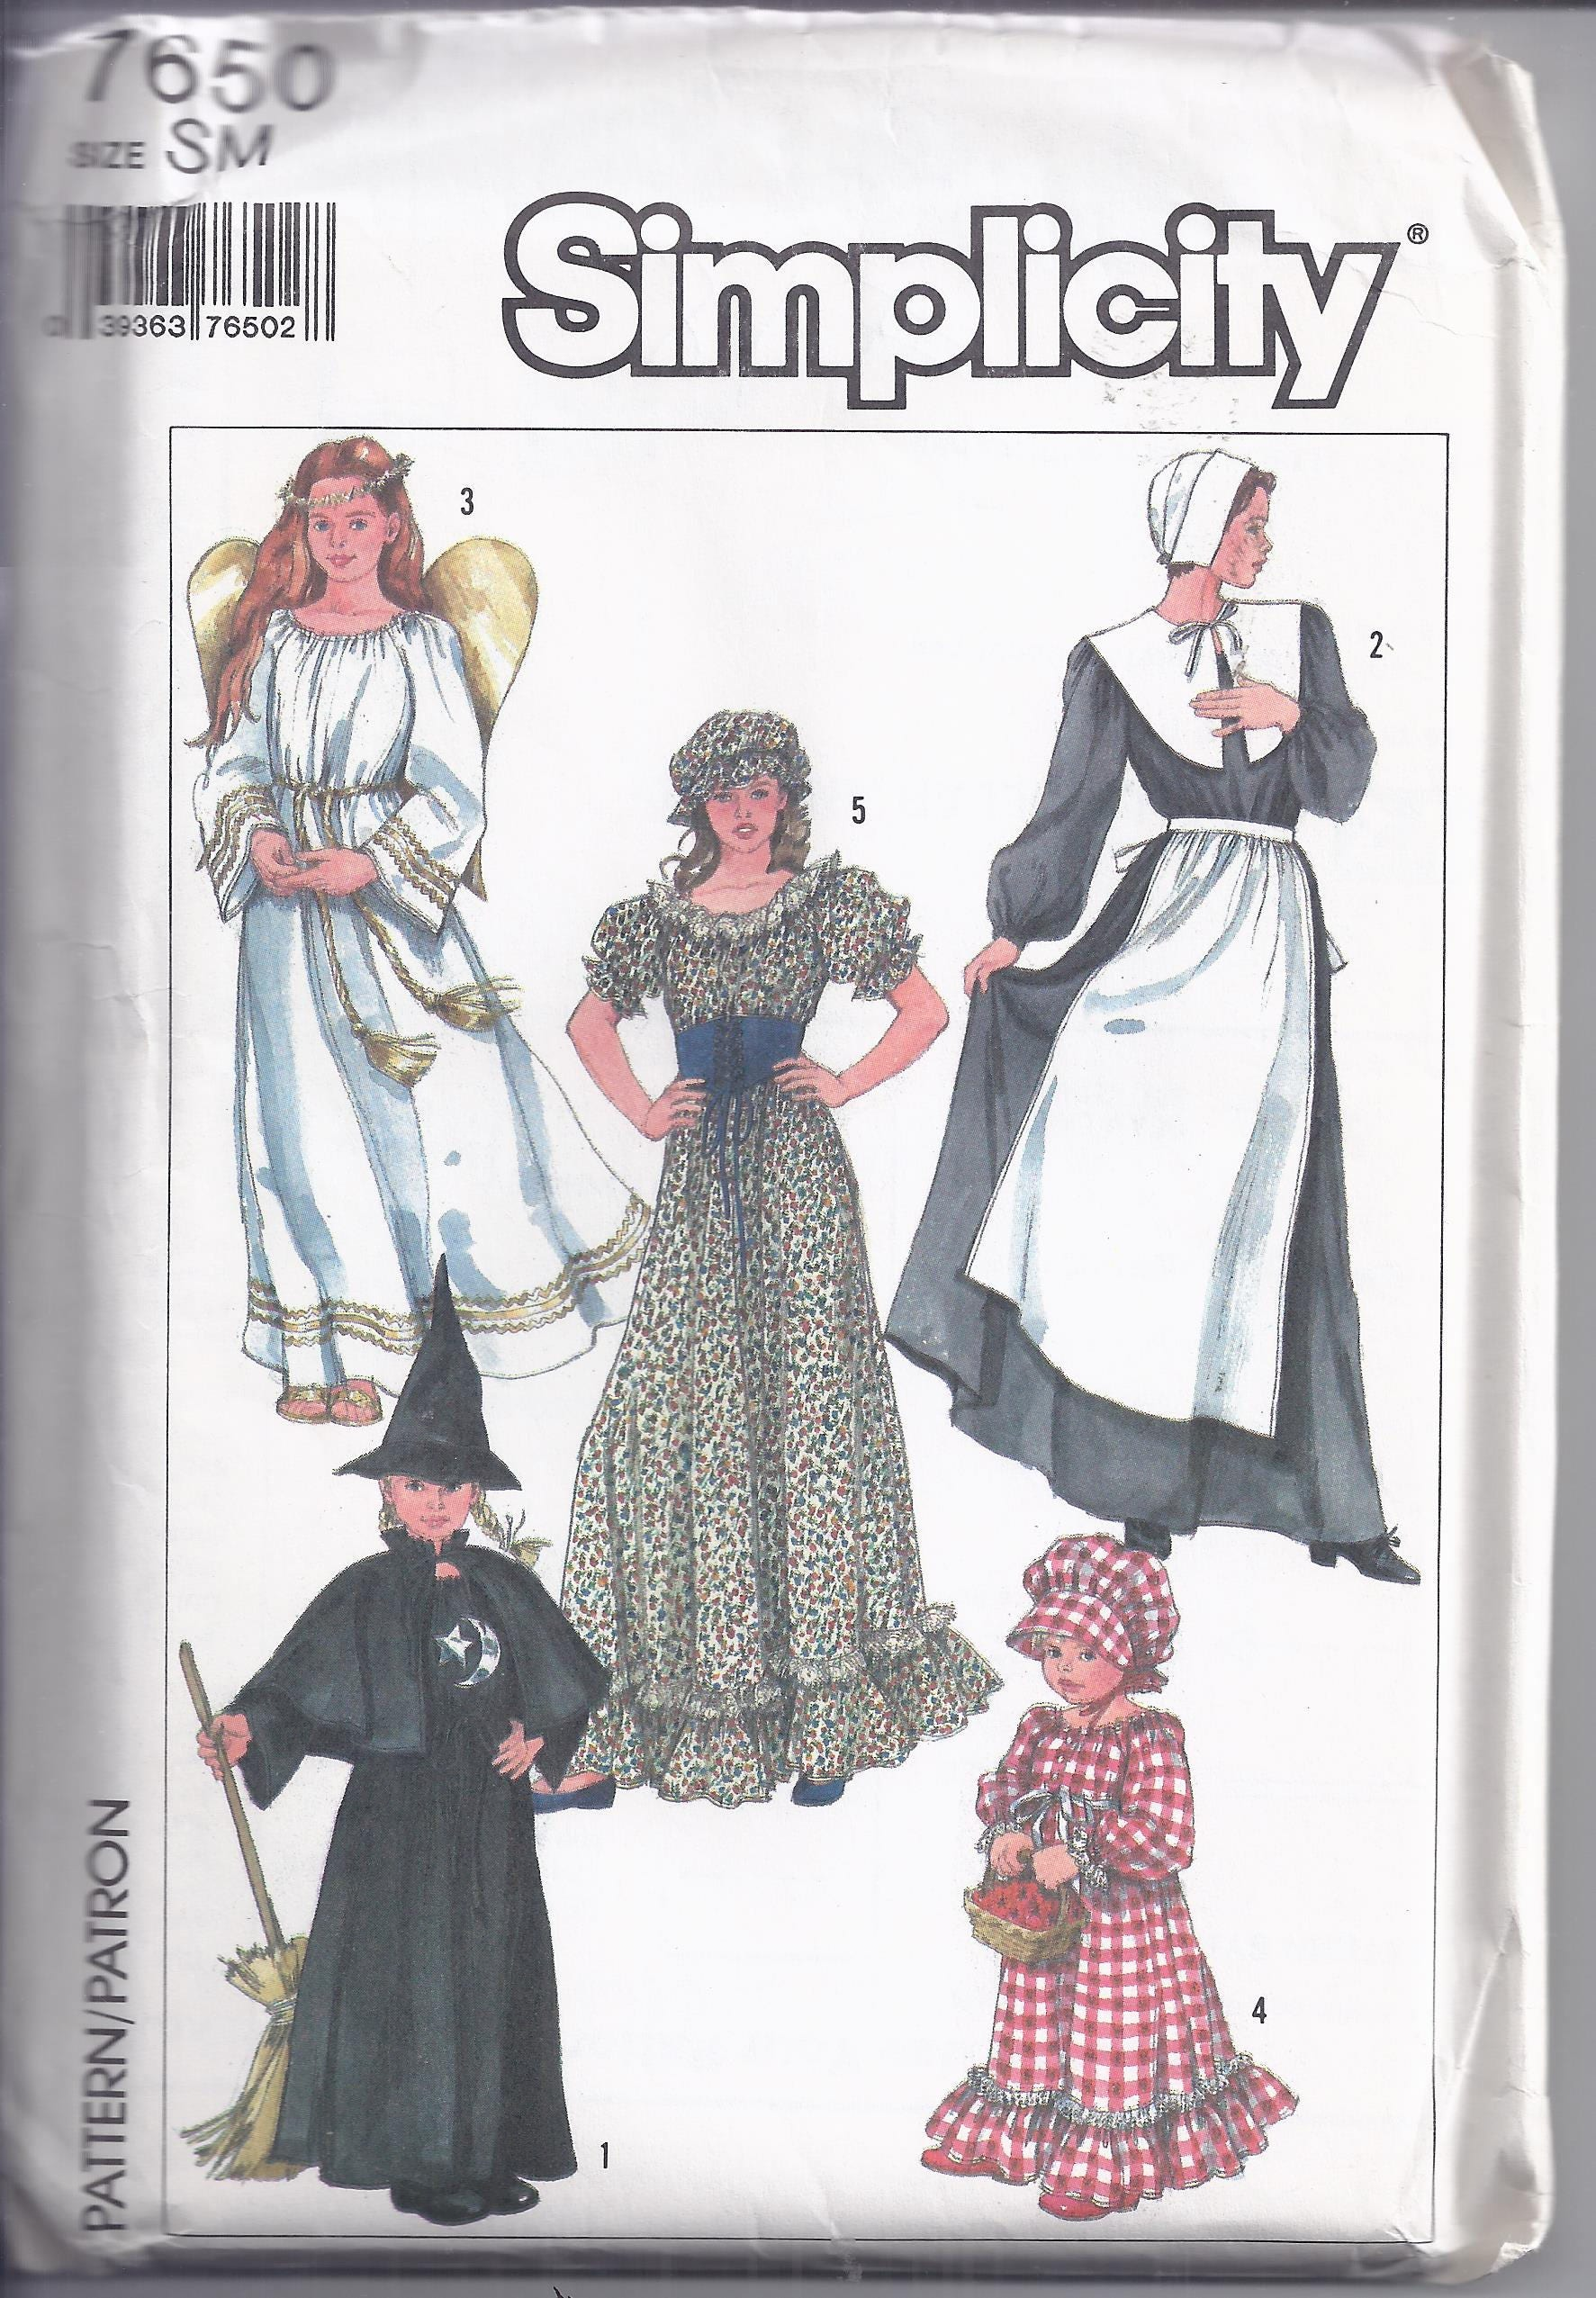 Simplicity Pattern # 7650 from 1986. Misses Costumes Angel WitchPilgrim Prairie. Bust 32 1/2 -34 UNCUT  sc 1 st  Enhancements Costume Supply & Simplicity Pattern # 7650 from 1986. Misses Costumes: Angel Witch ...